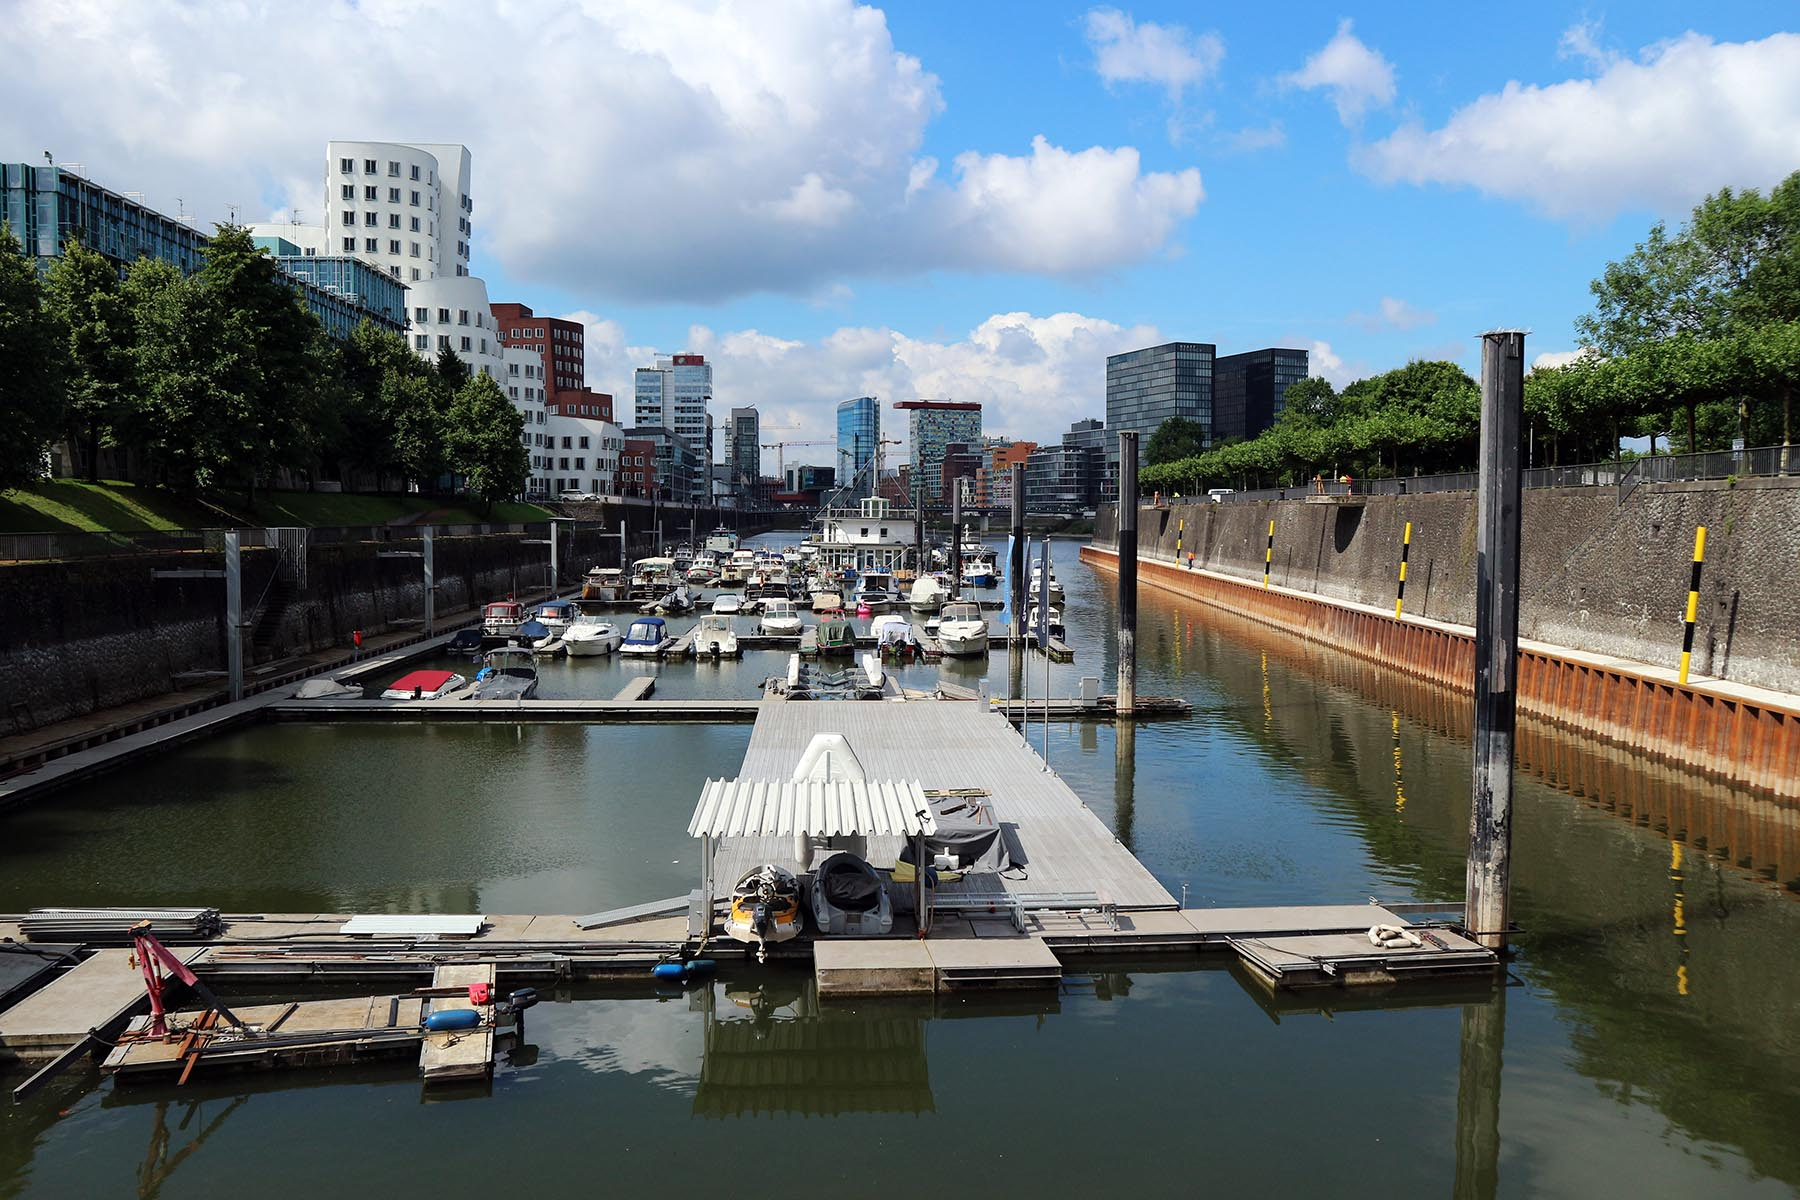 """Medienhafen Duesseldorf.  ... thus take advantage of the image of the Medienhafen, described by the architectural association of North Rhine-Westphalia as an """"Architecture Mile."""" In 1990, the city began the restructuring of the former Zollhafen (Customs Harbour)."""